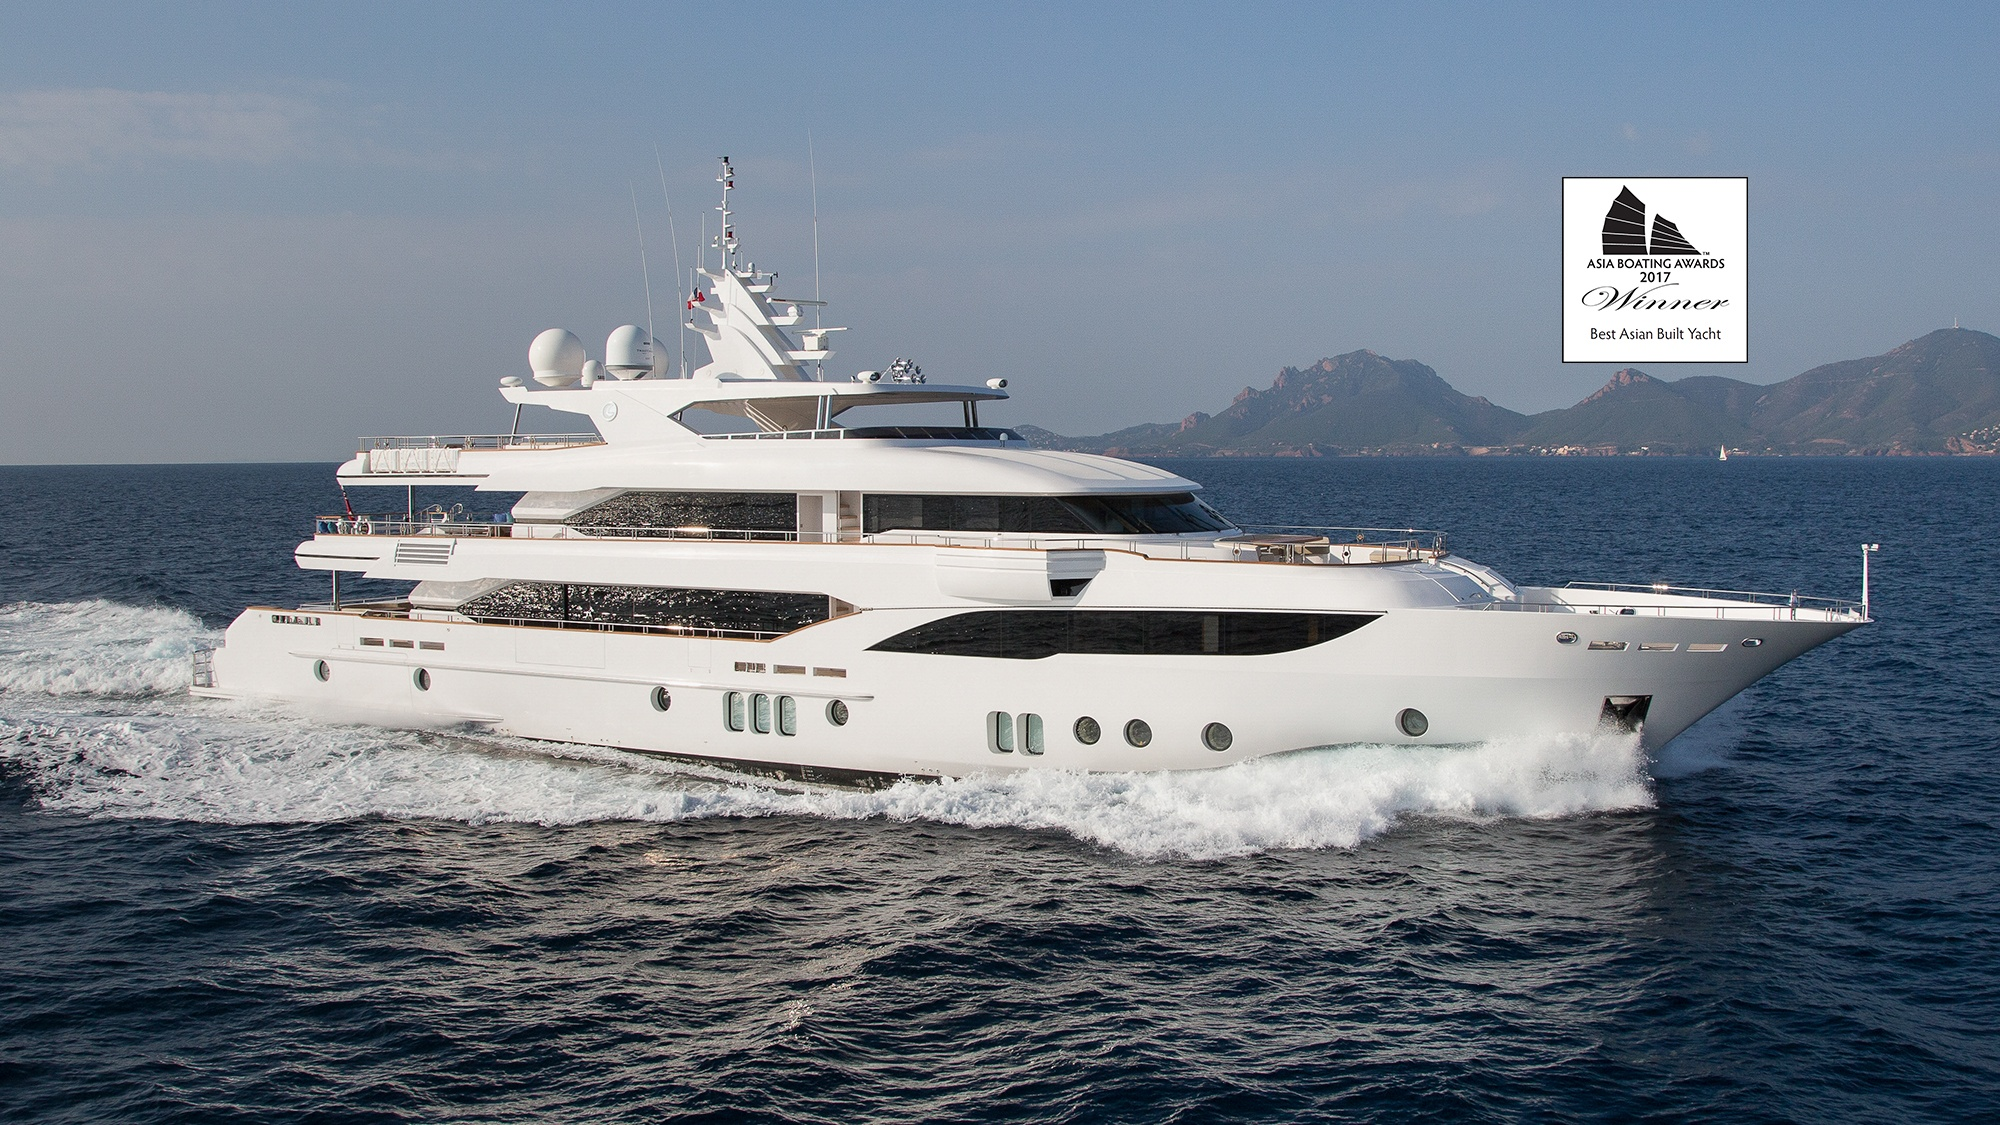 Majesty 155 Wins Best Asian Built Yacht